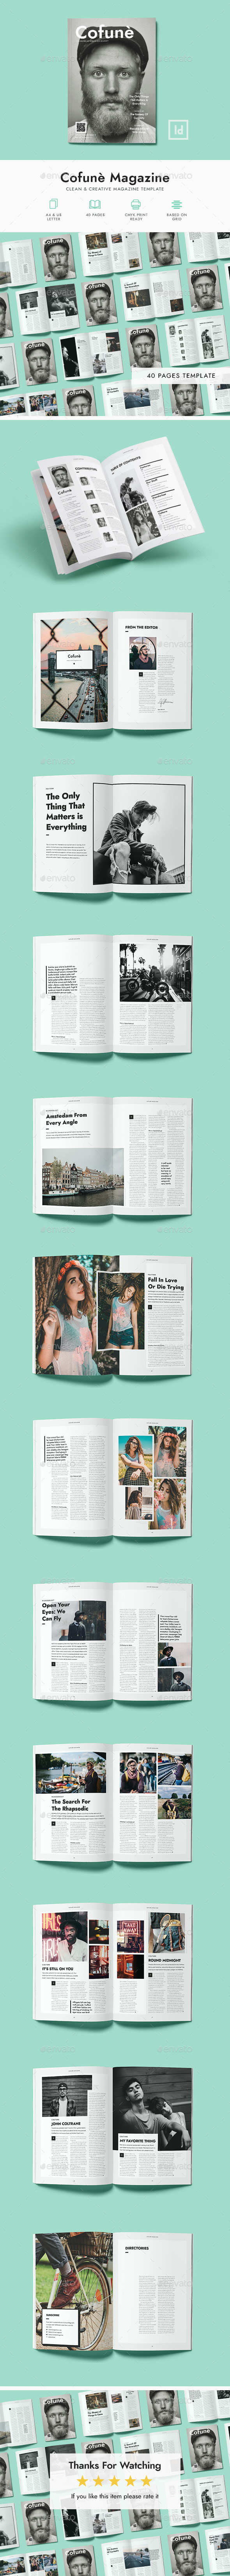 Cofune Magazine - 40 Pages Indesign Template - Magazines Print Templates